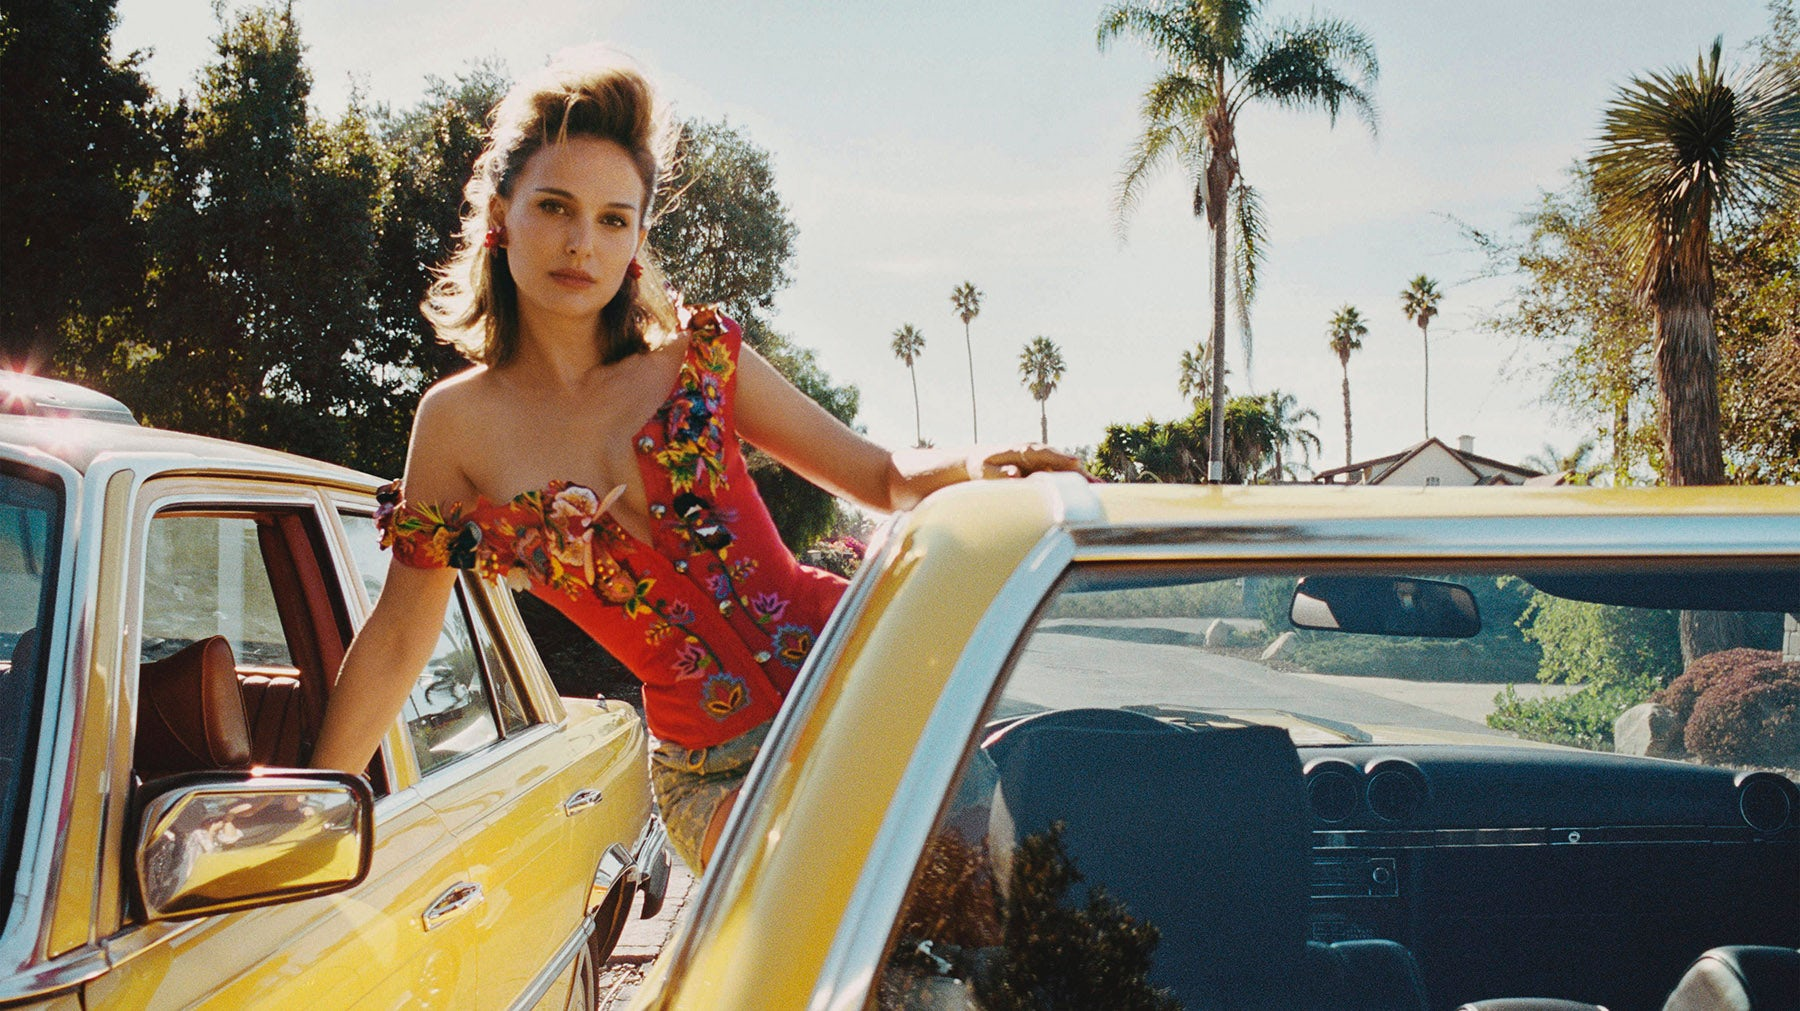 Porter's digital campaign featuring Natalie Portman | Source: YNAP